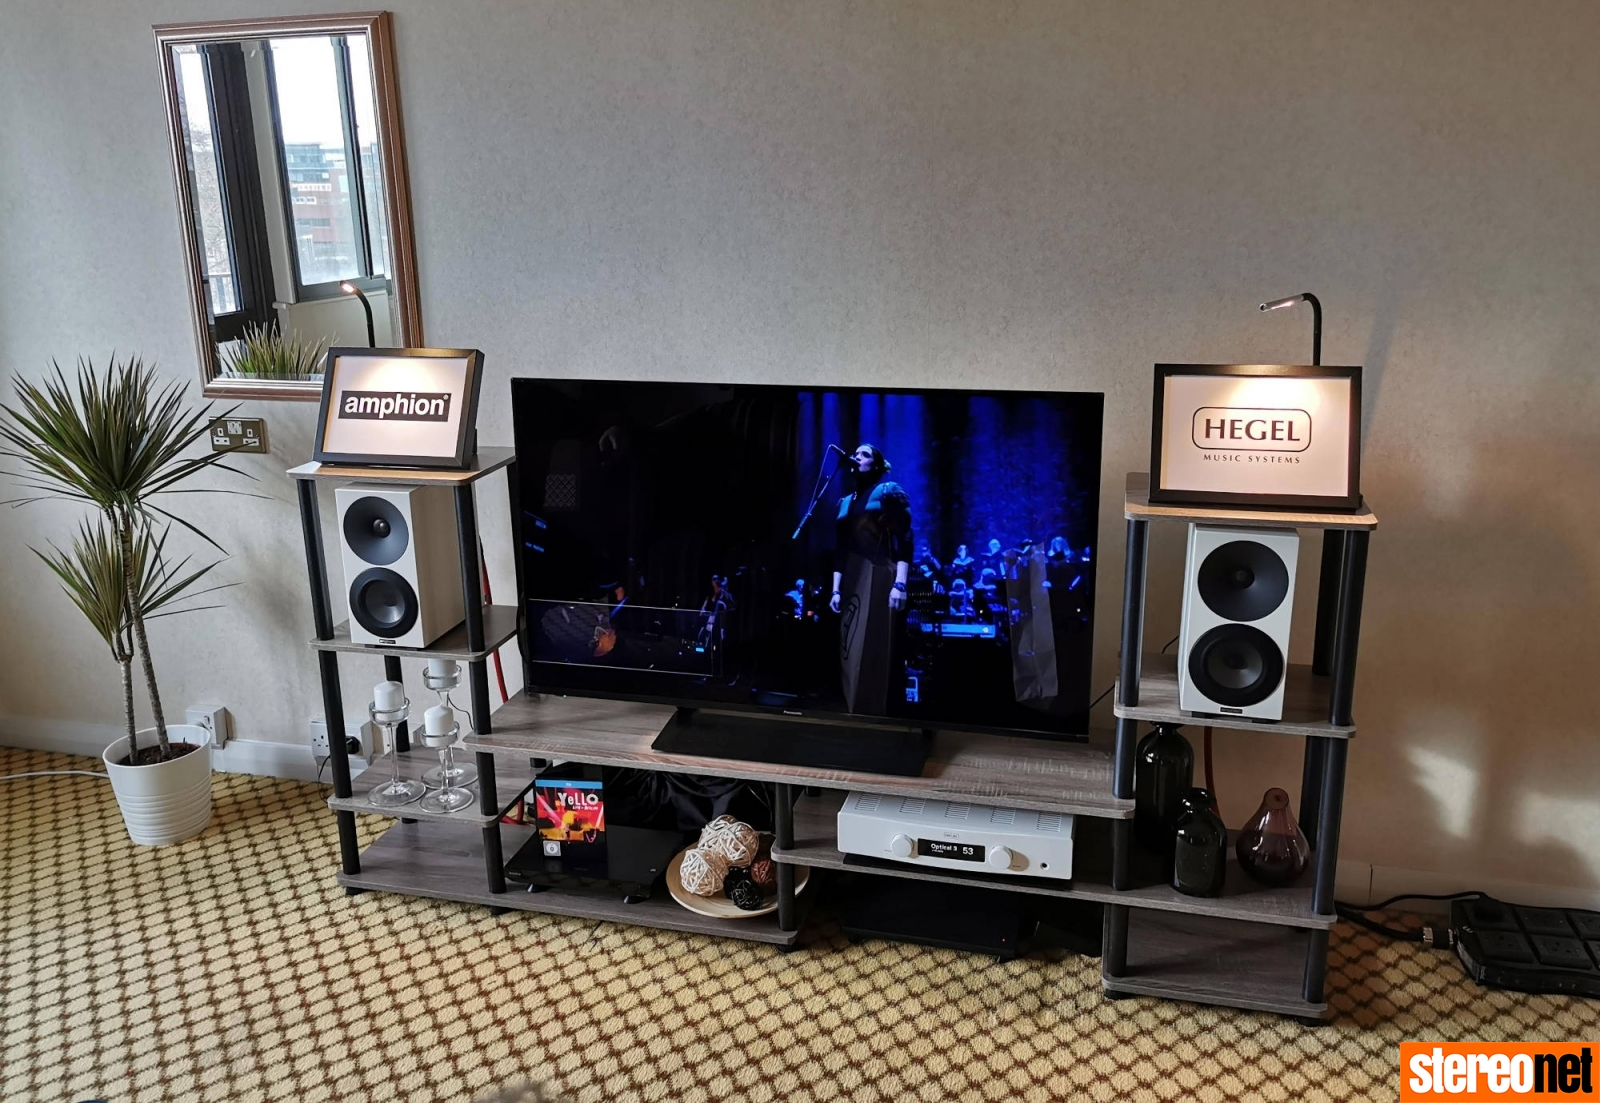 Hegel Amphion Bristol hifi show 2020 report